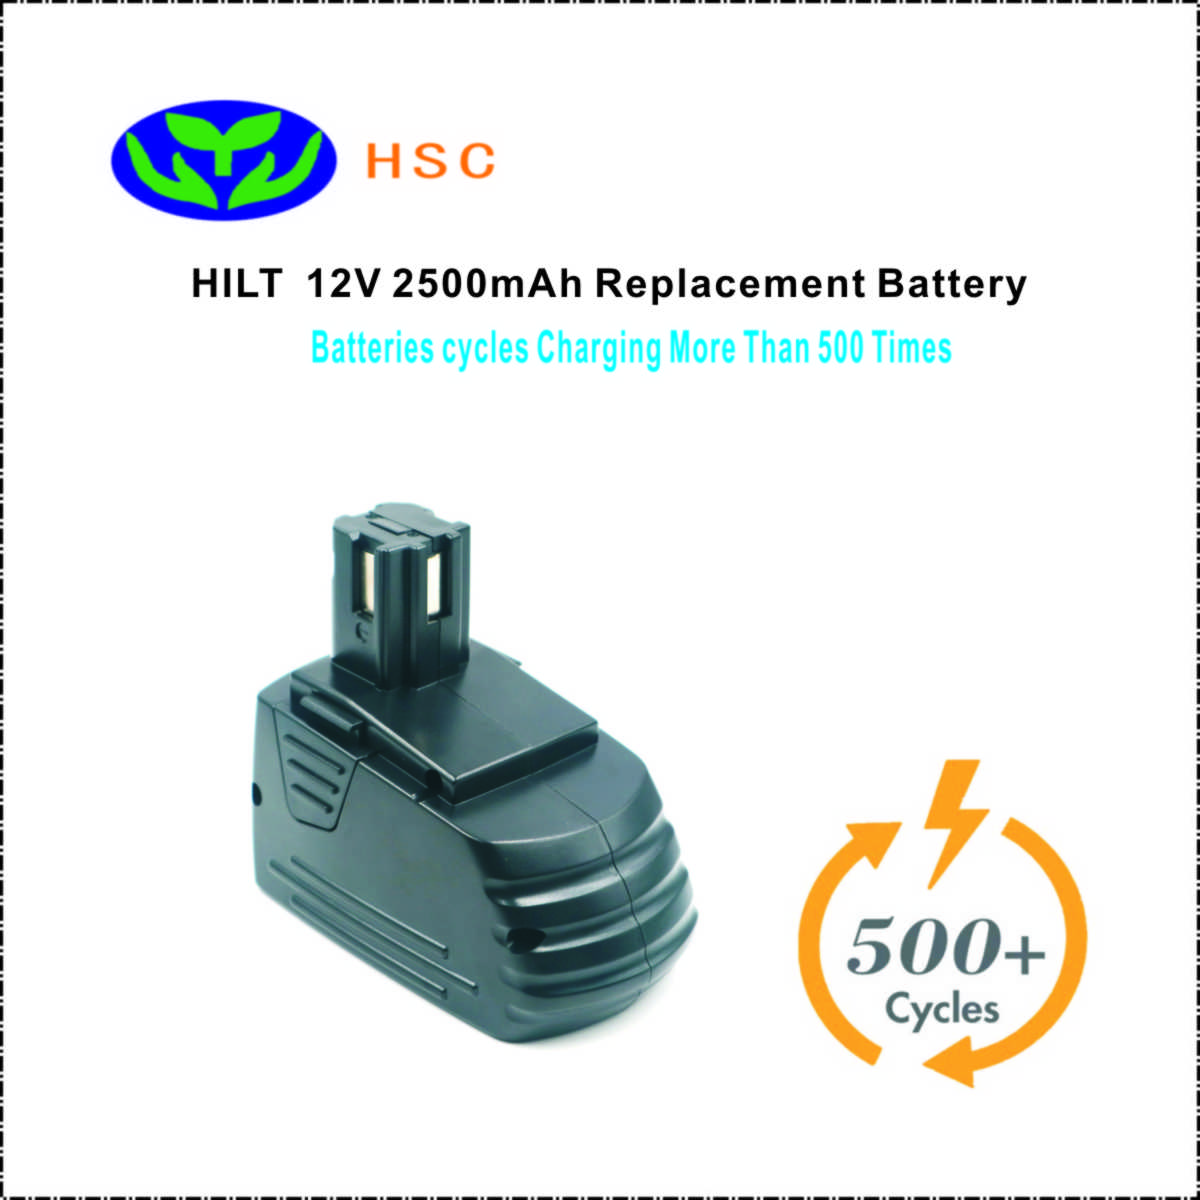 2 5Ah rechargeable battery pack HIL12A NiMh Battery 12V Replacement Hilti SFB121 SFB126 TCM2 SF120 A